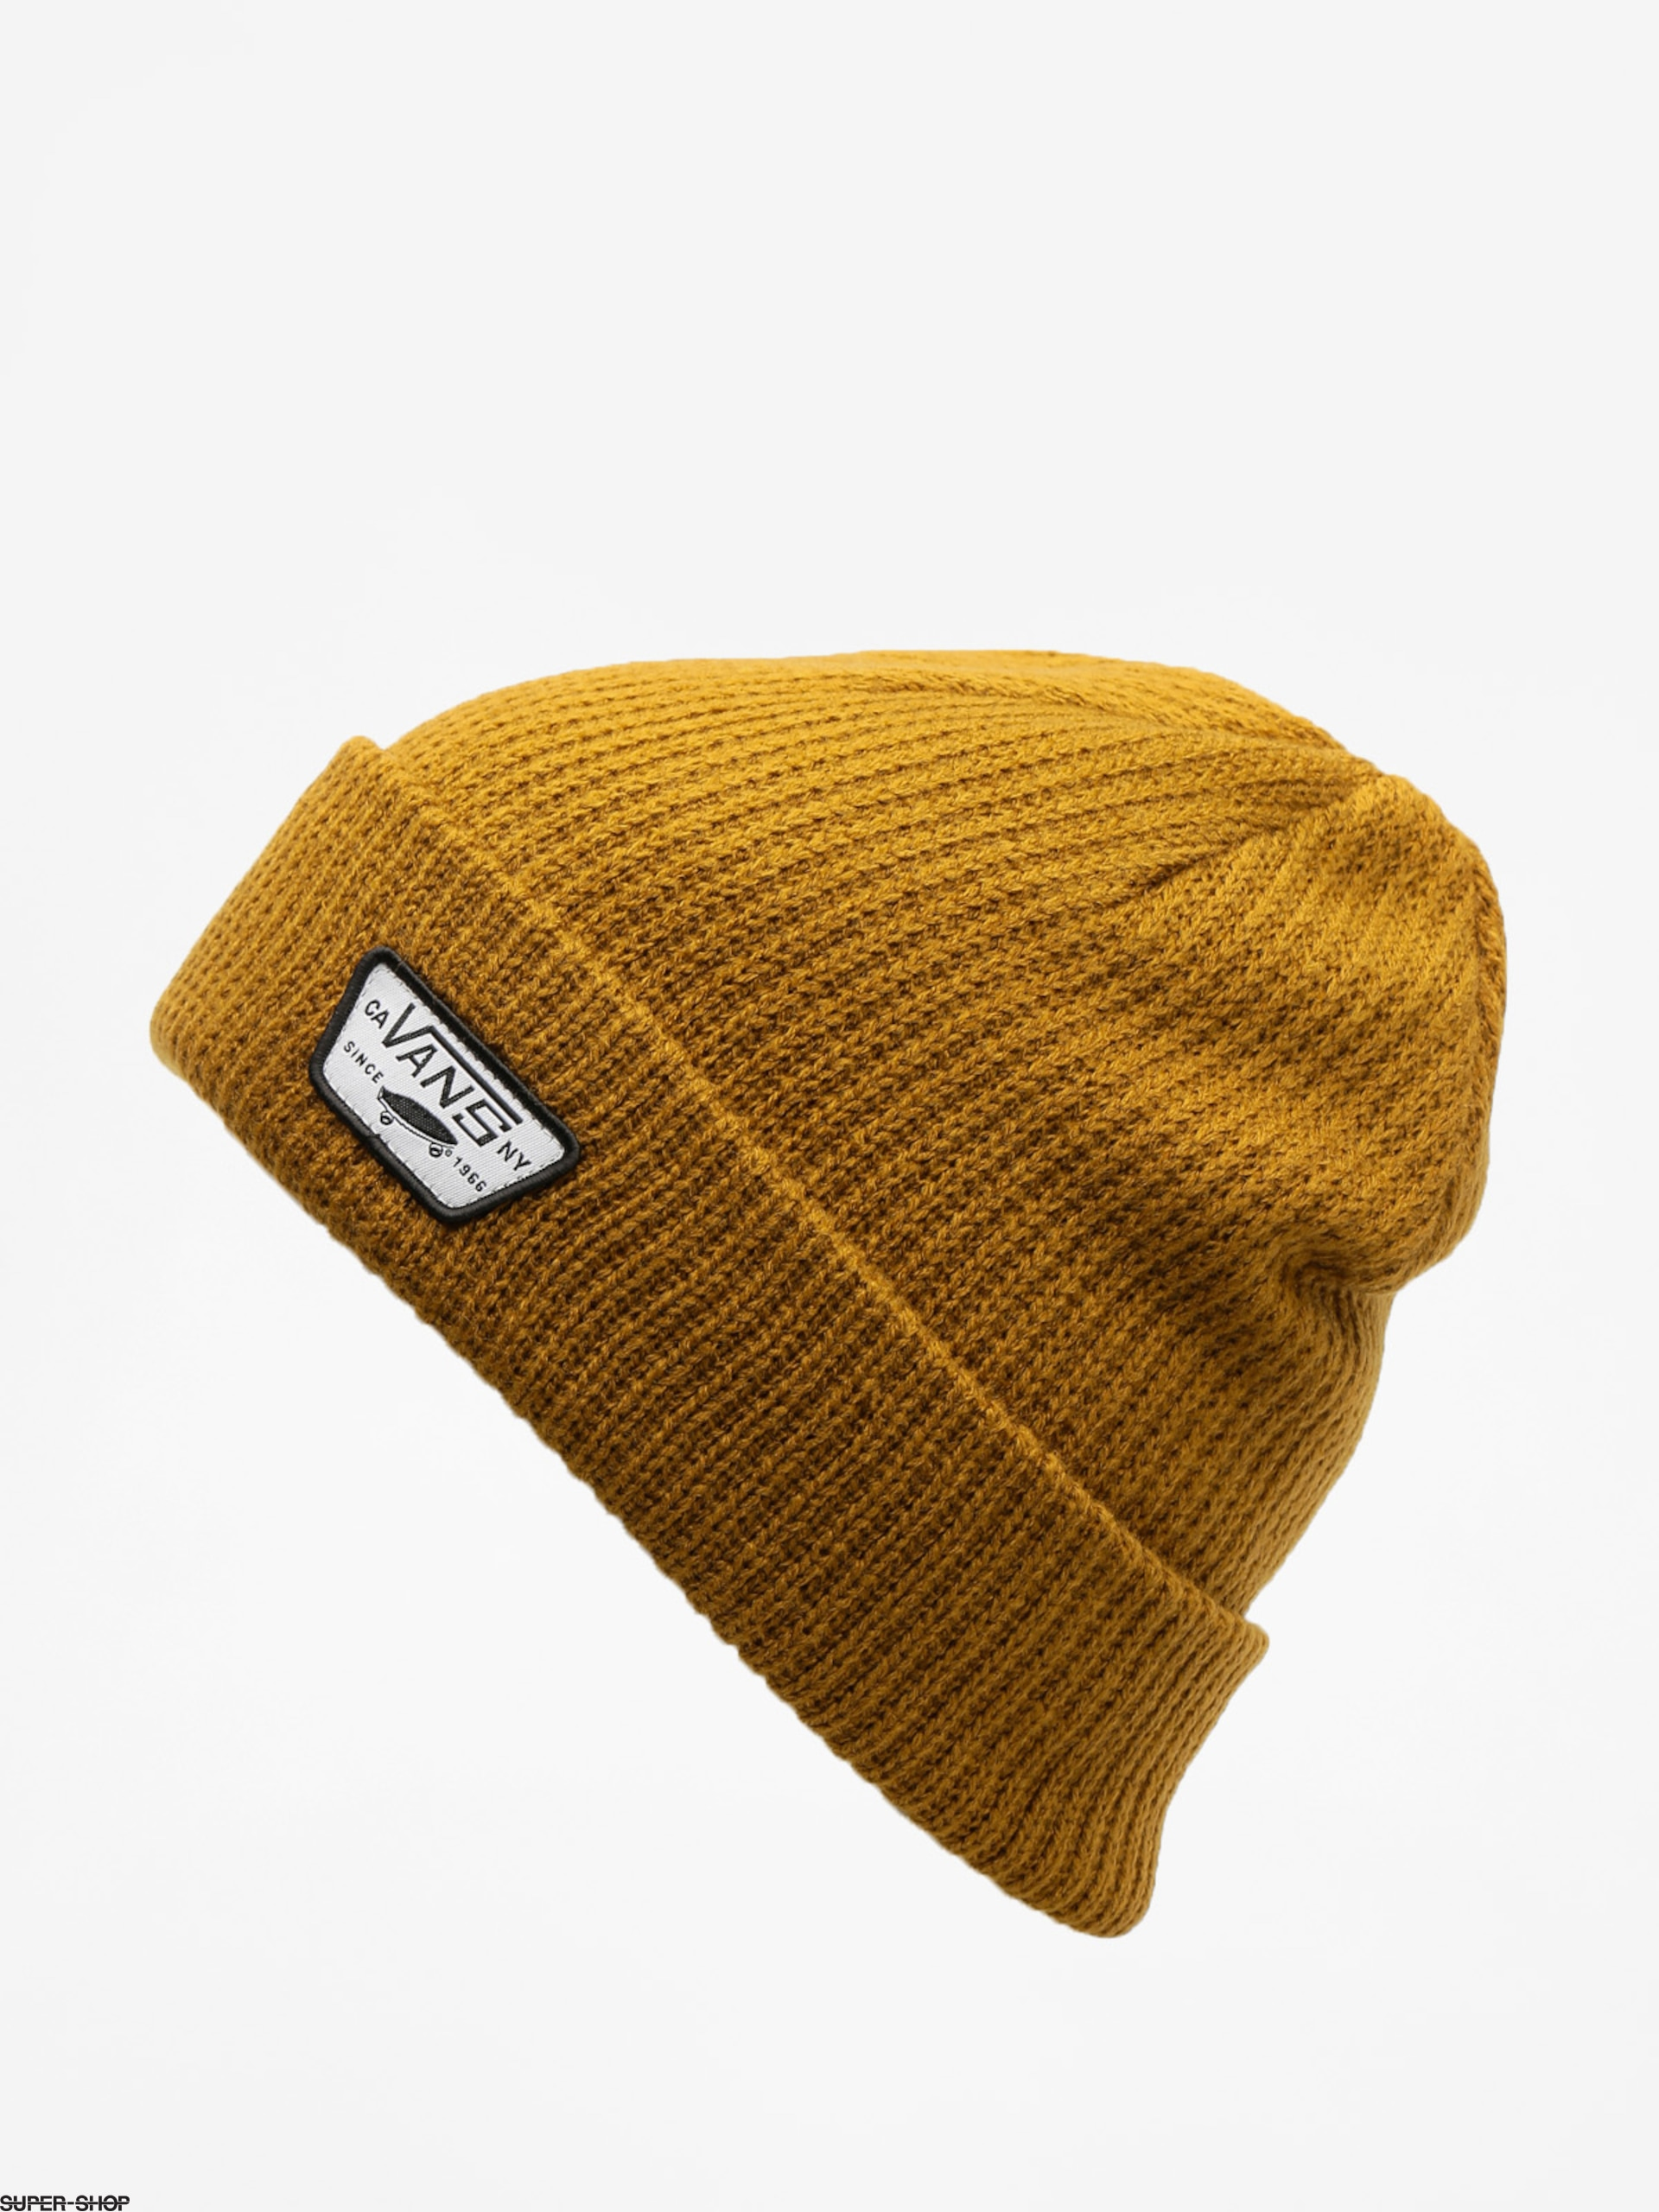 888105-w1920-vans-beanie-mini-full-patch-tapenade.jpg 6d80f5f1259